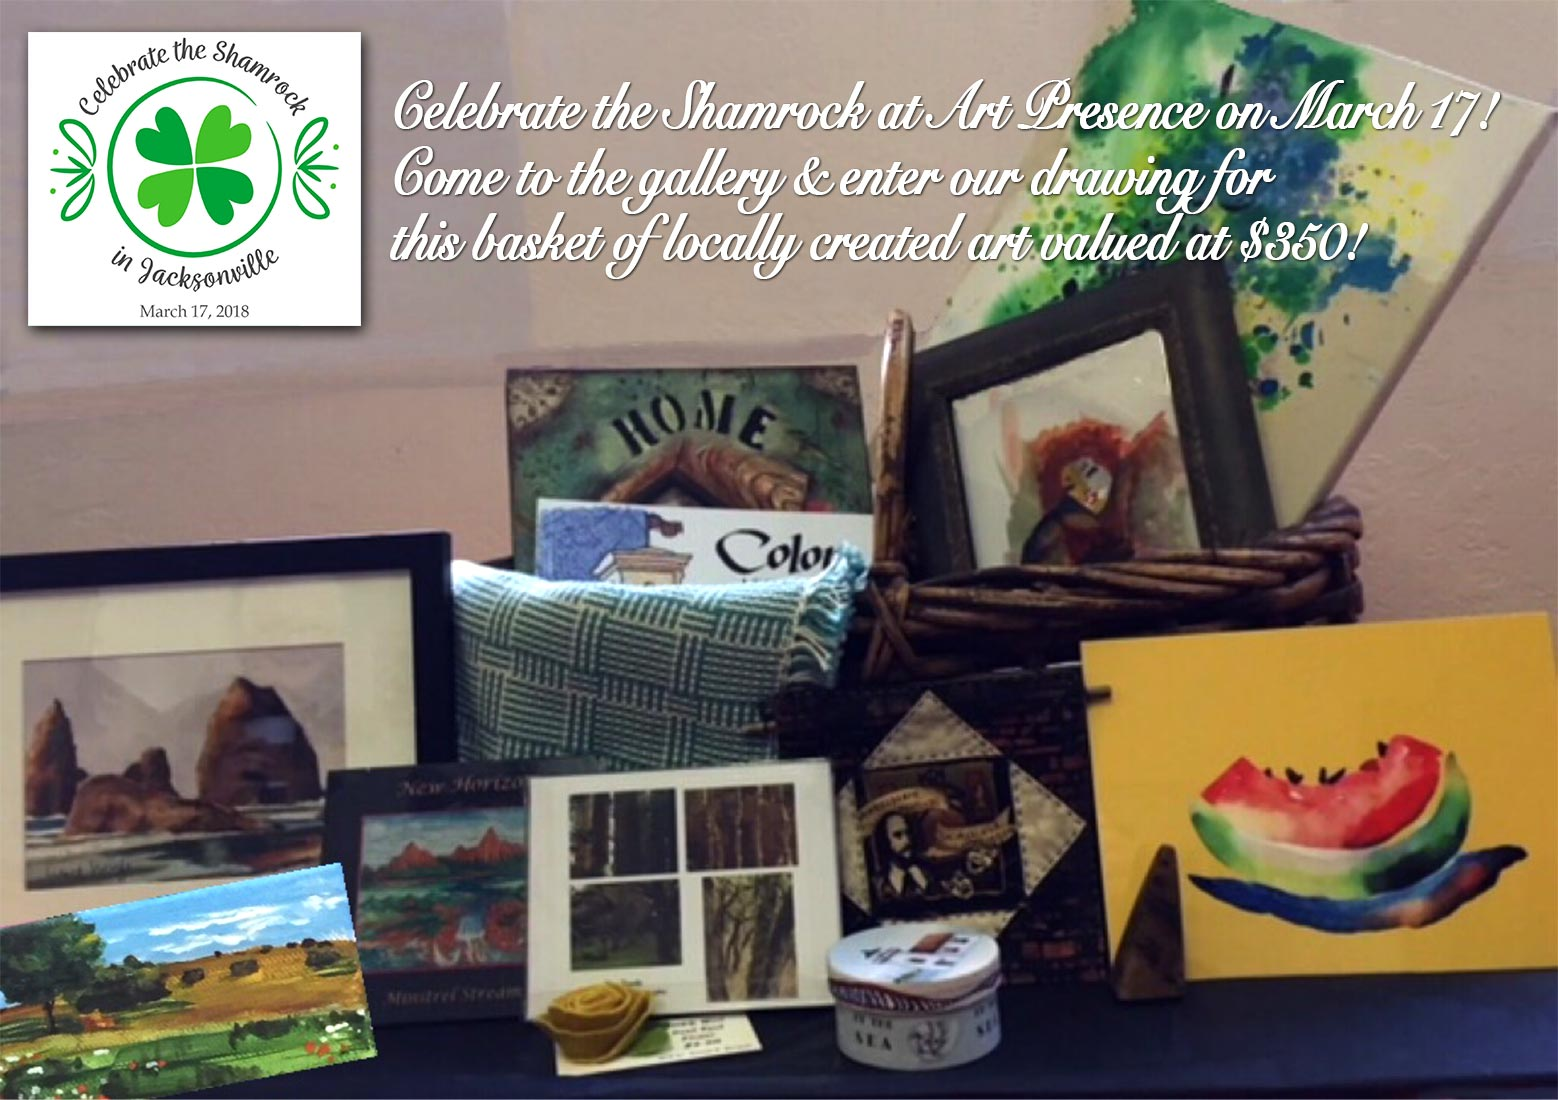 St Patrick's Day at Art Prewsence - Celebrate the Shamrock with us and enter to win this basket of art valued at $350!!